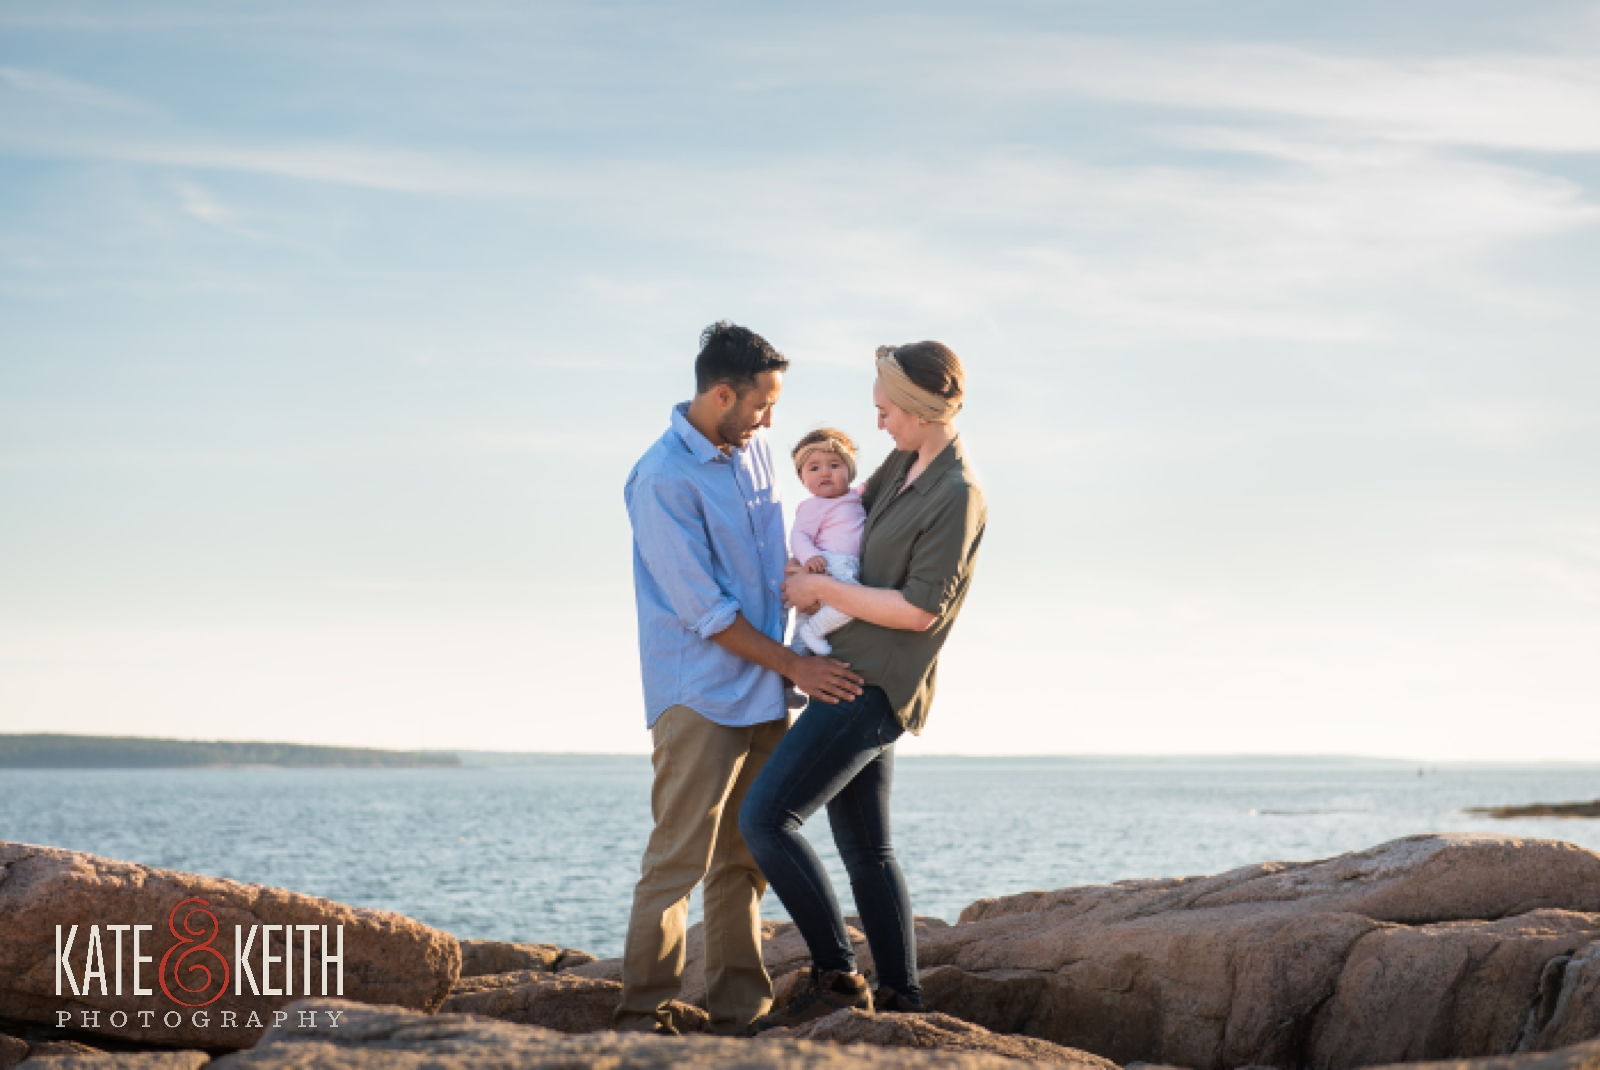 Couple celebrating engagement in Acadia National Park, Maine, Mount Desert Island, surprise proposal, proposal photos, wedding proposal, coast, ocean, seaside, young family, couple with baby, engagement photos